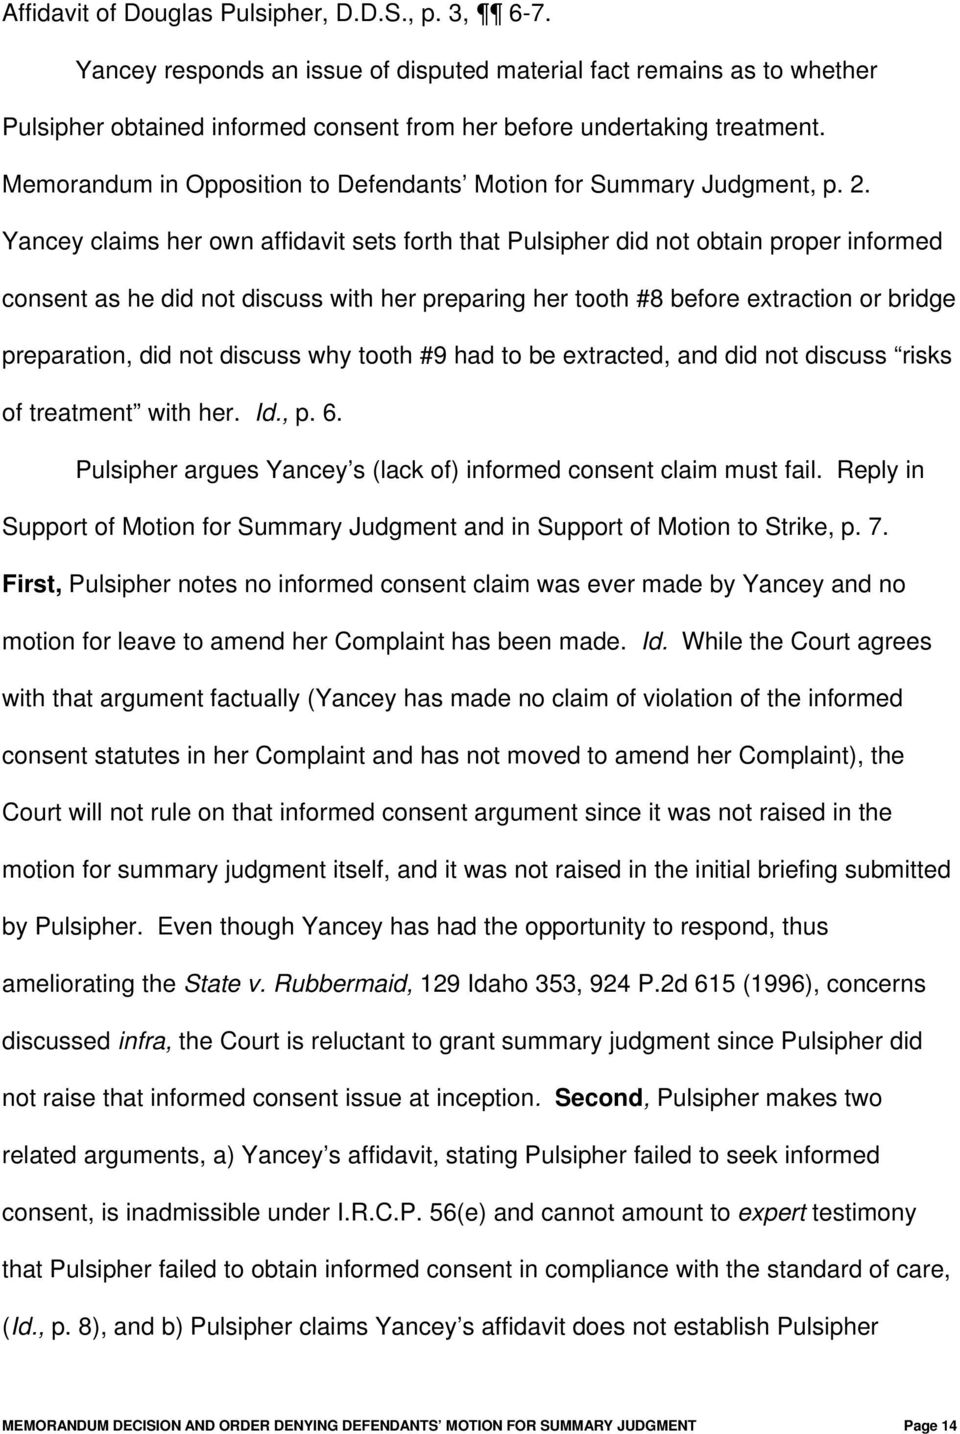 Yancey claims her own affidavit sets forth that Pulsipher did not obtain proper informed consent as he did not discuss with her preparing her tooth #8 before extraction or bridge preparation, did not